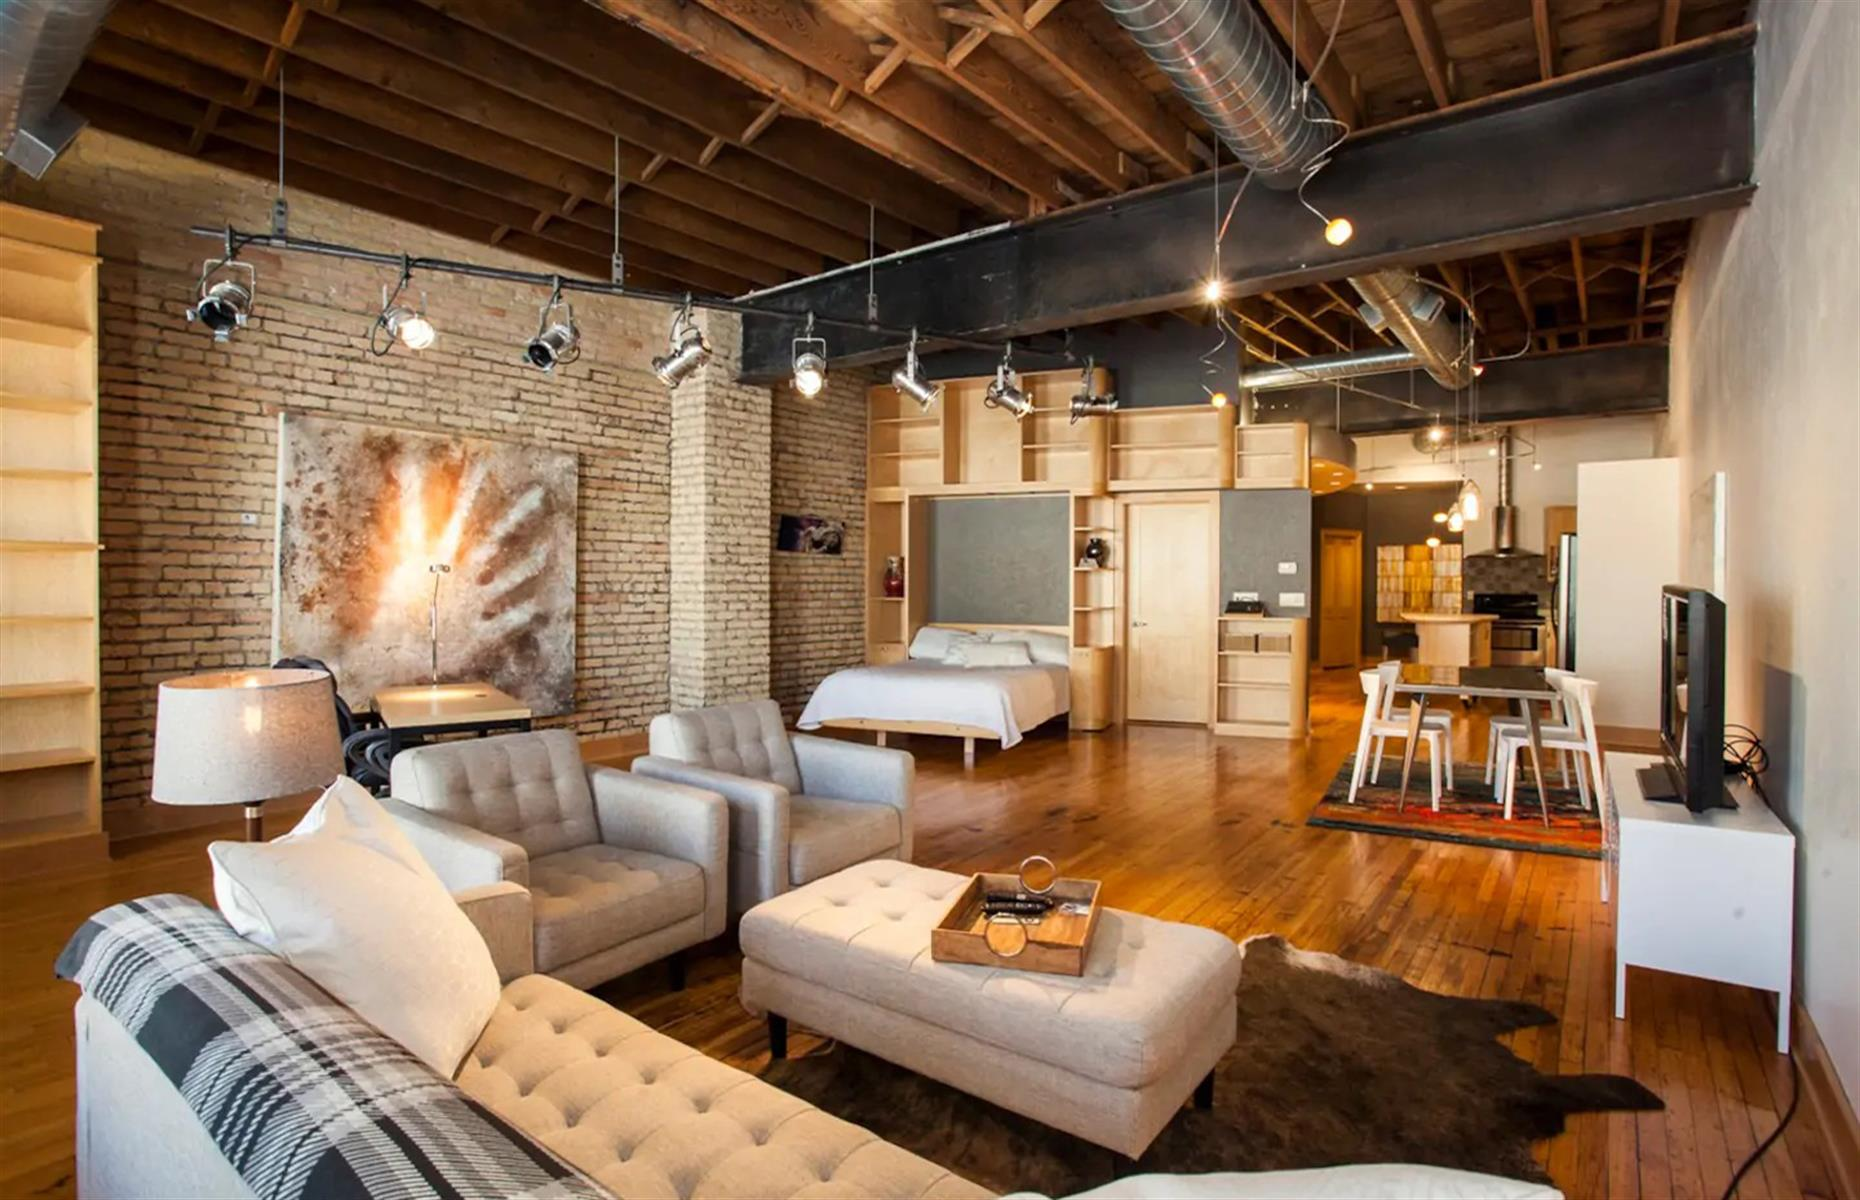 Slide 36 of 52: Offering the best of downtown living, this cool studio loft is located right at the heart of Fargo in North Dakota. The exposed brick walls are covered in paintings from local artists (that are available to buy), and the studio features a comfortable king bed just waiting for you to sink into. While you're not out exploring the city, there's a large sofa for downtime as well as a huge kitchen and a dining table.